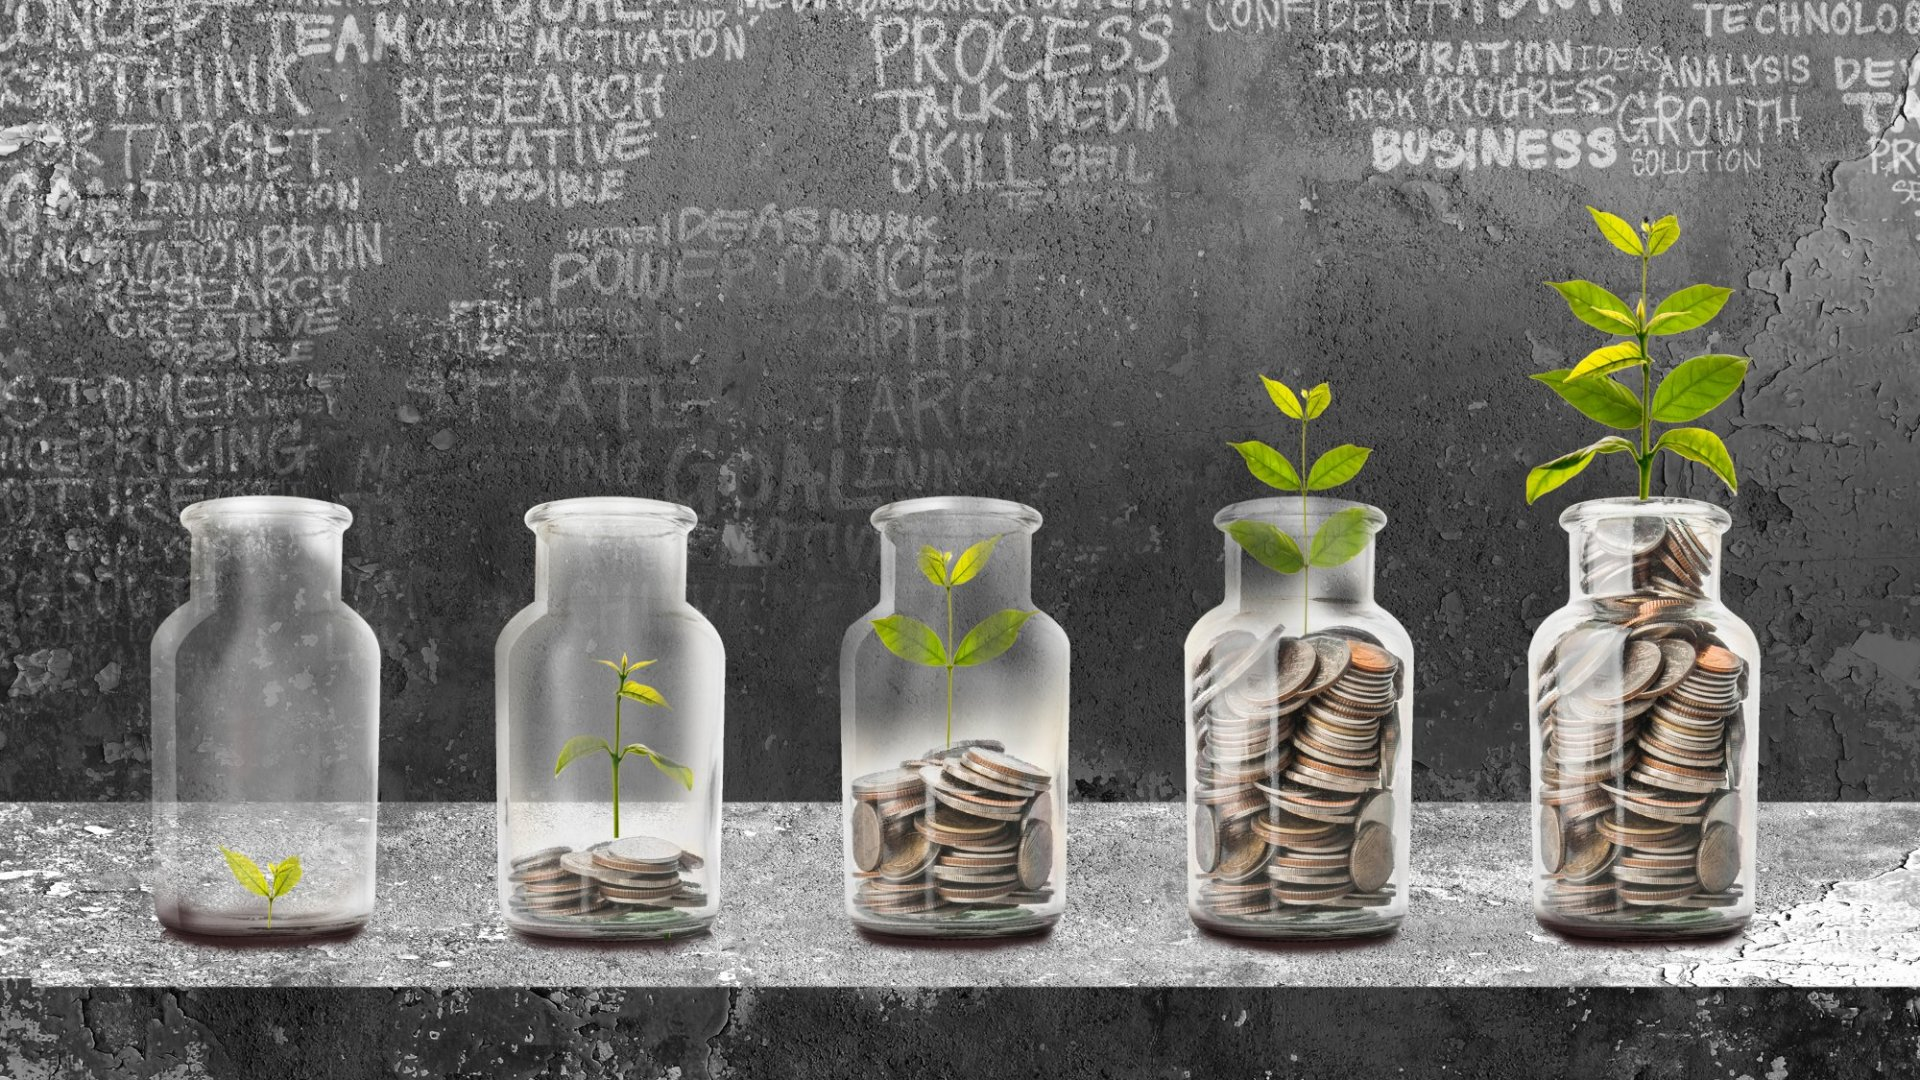 10 Tips to Create Startup Financials That Will Have Professional Investors Chasing You